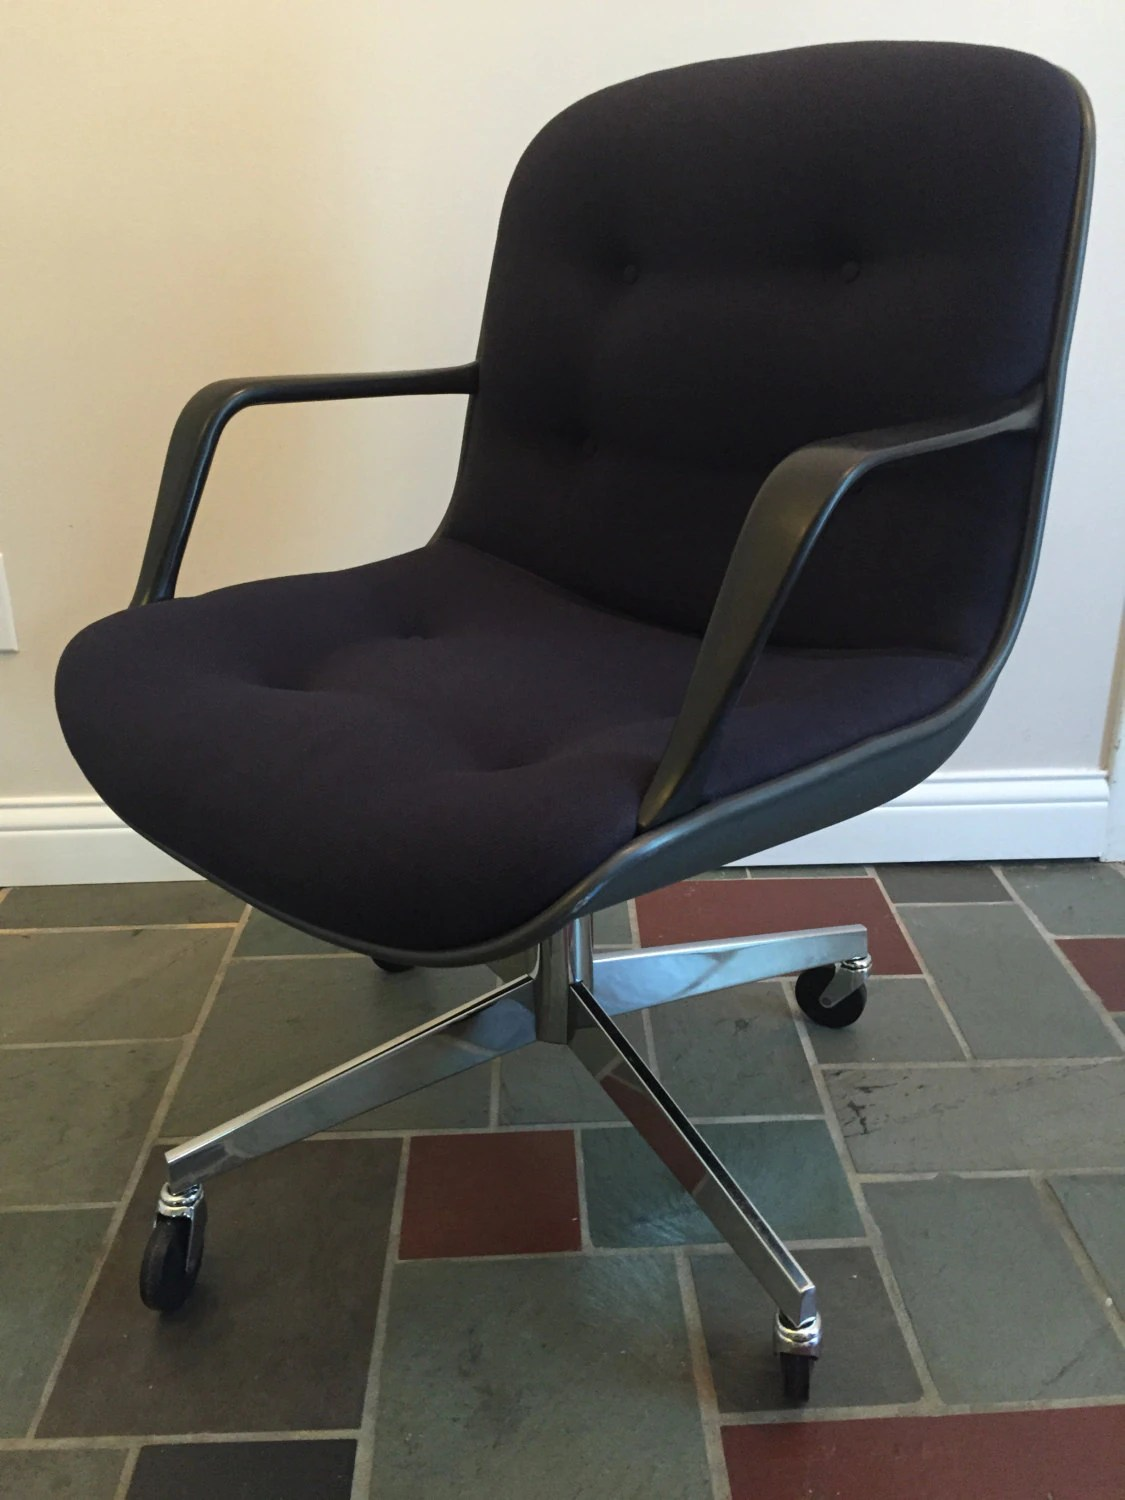 steelcase vintage chair lane leather i cant believe the 80s are